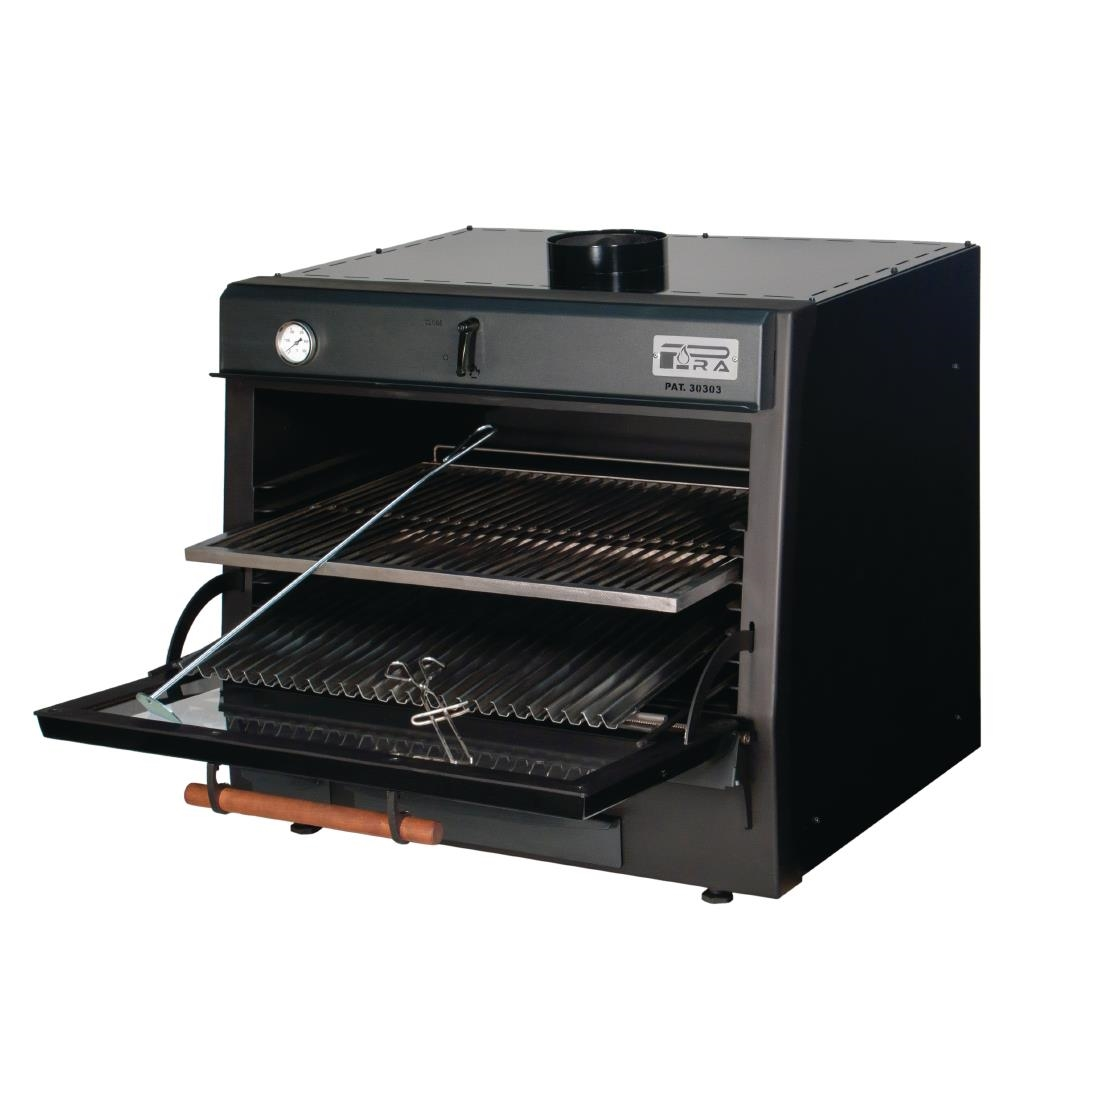 Pira 90 LUX Charcoal Oven Black